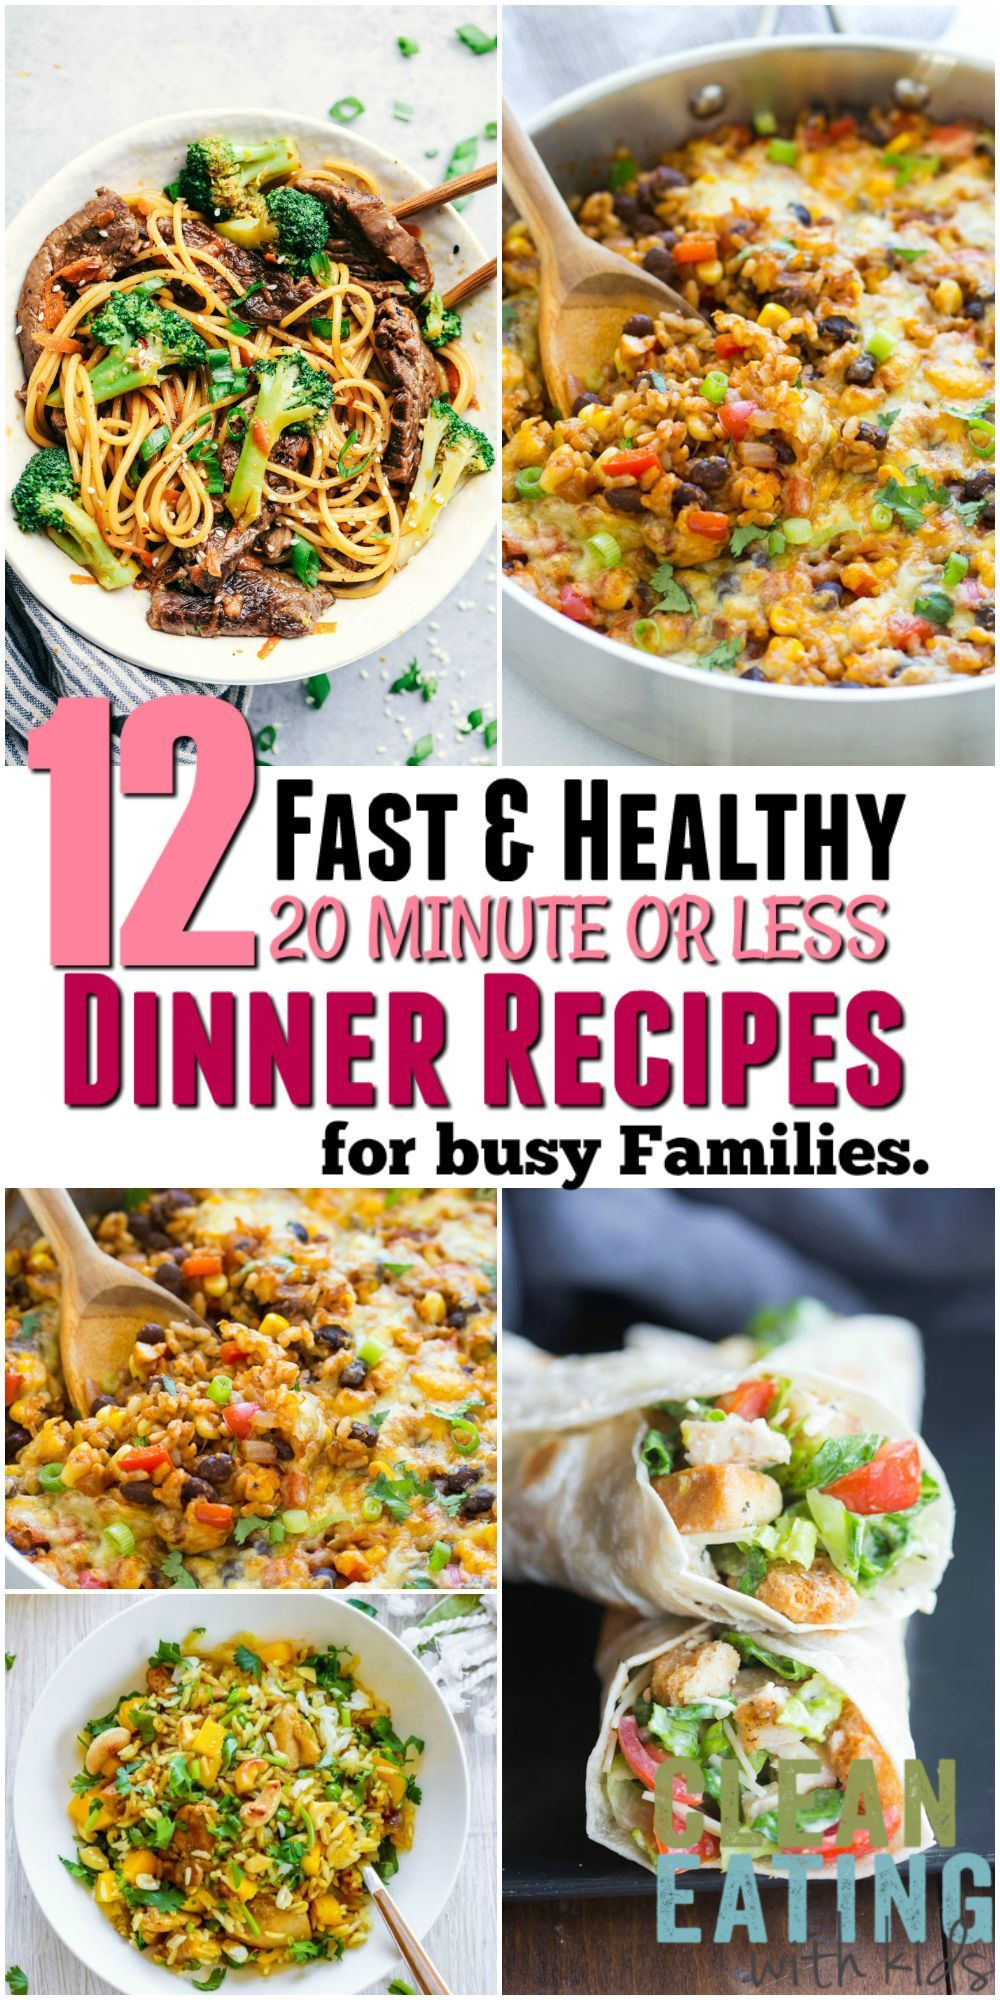 12 Super Fast Healthy Family Dinner Recipes That Take 20 Minutes Or